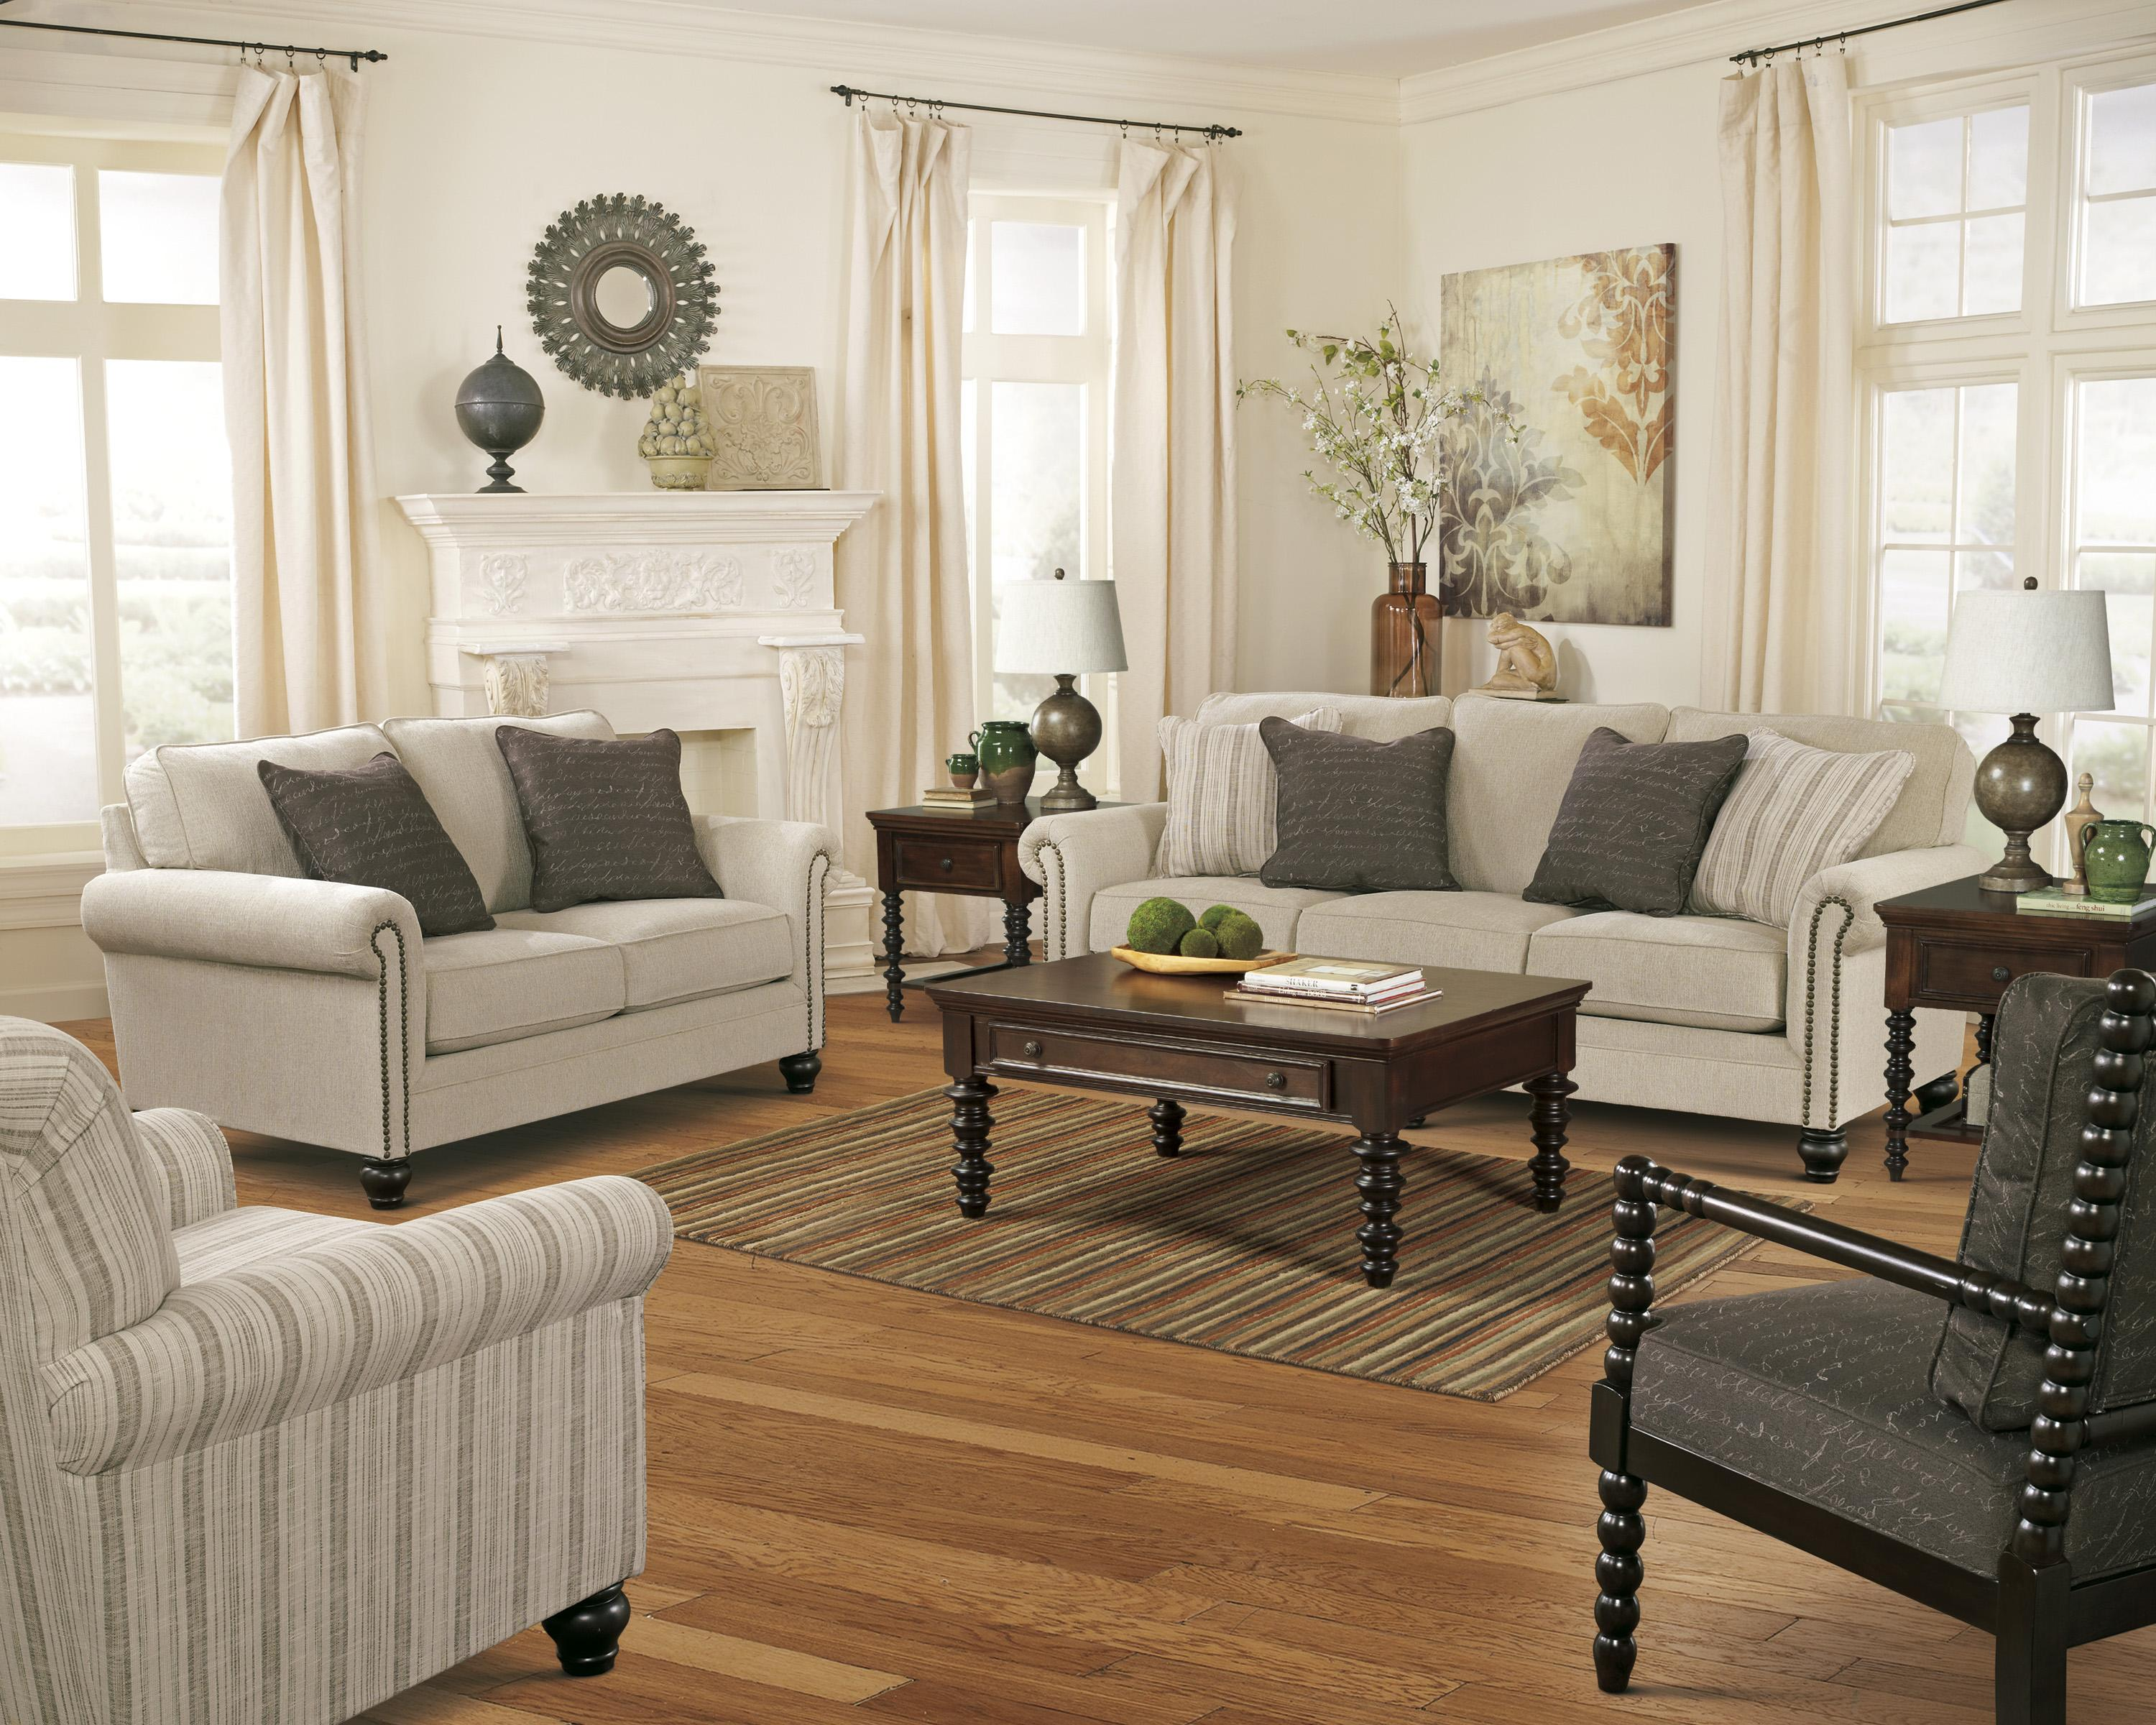 Signature Design by Ashley Milari - Linen Stationary Living Room Group - Item Number: 13000 Living Room Group 3